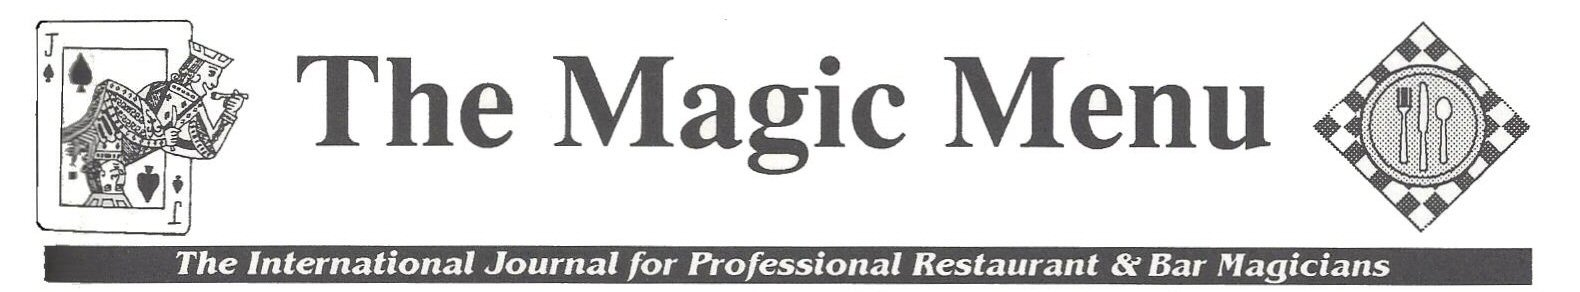 Magic Menu Banner.jpg